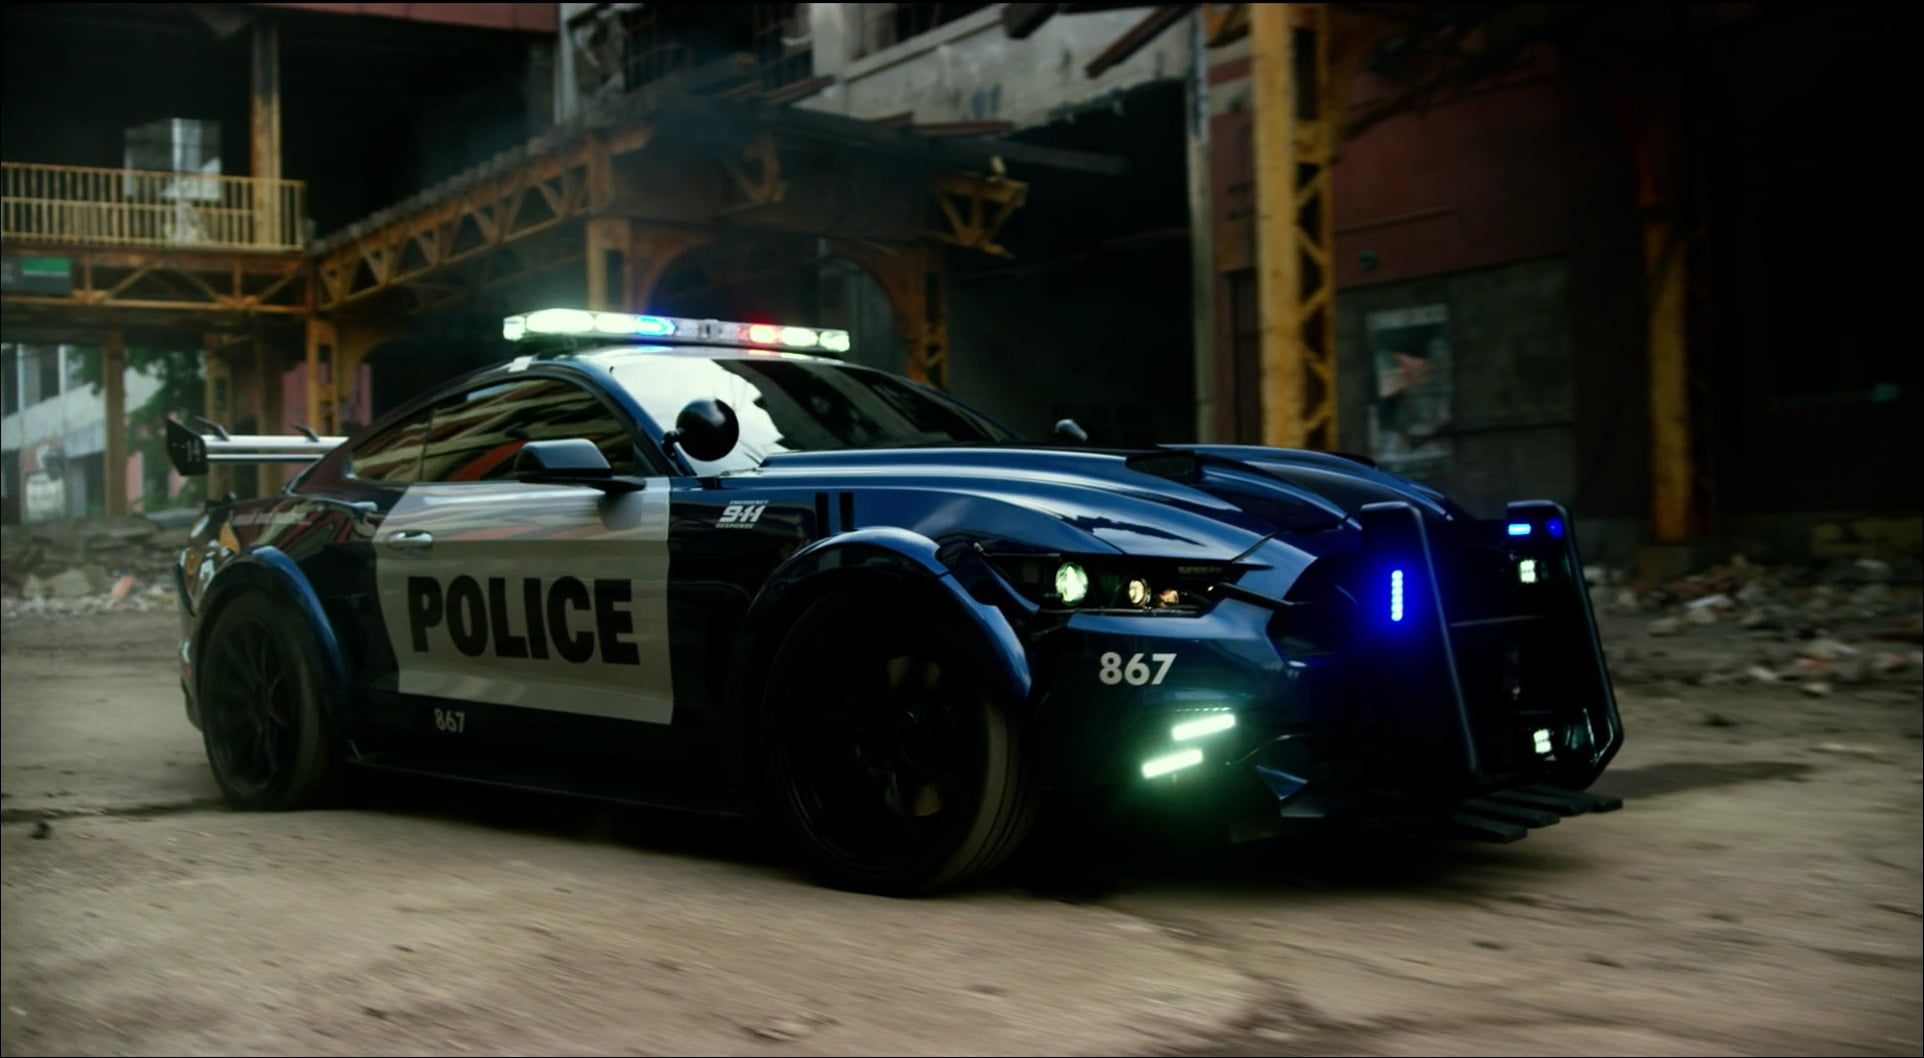 Blue And White Police Car Police Car Ford Transformers Ford Mustang Transformers The Last Knight 1080p Wallpaper Hdwallpa Mustang Ford Mustang Car Ford